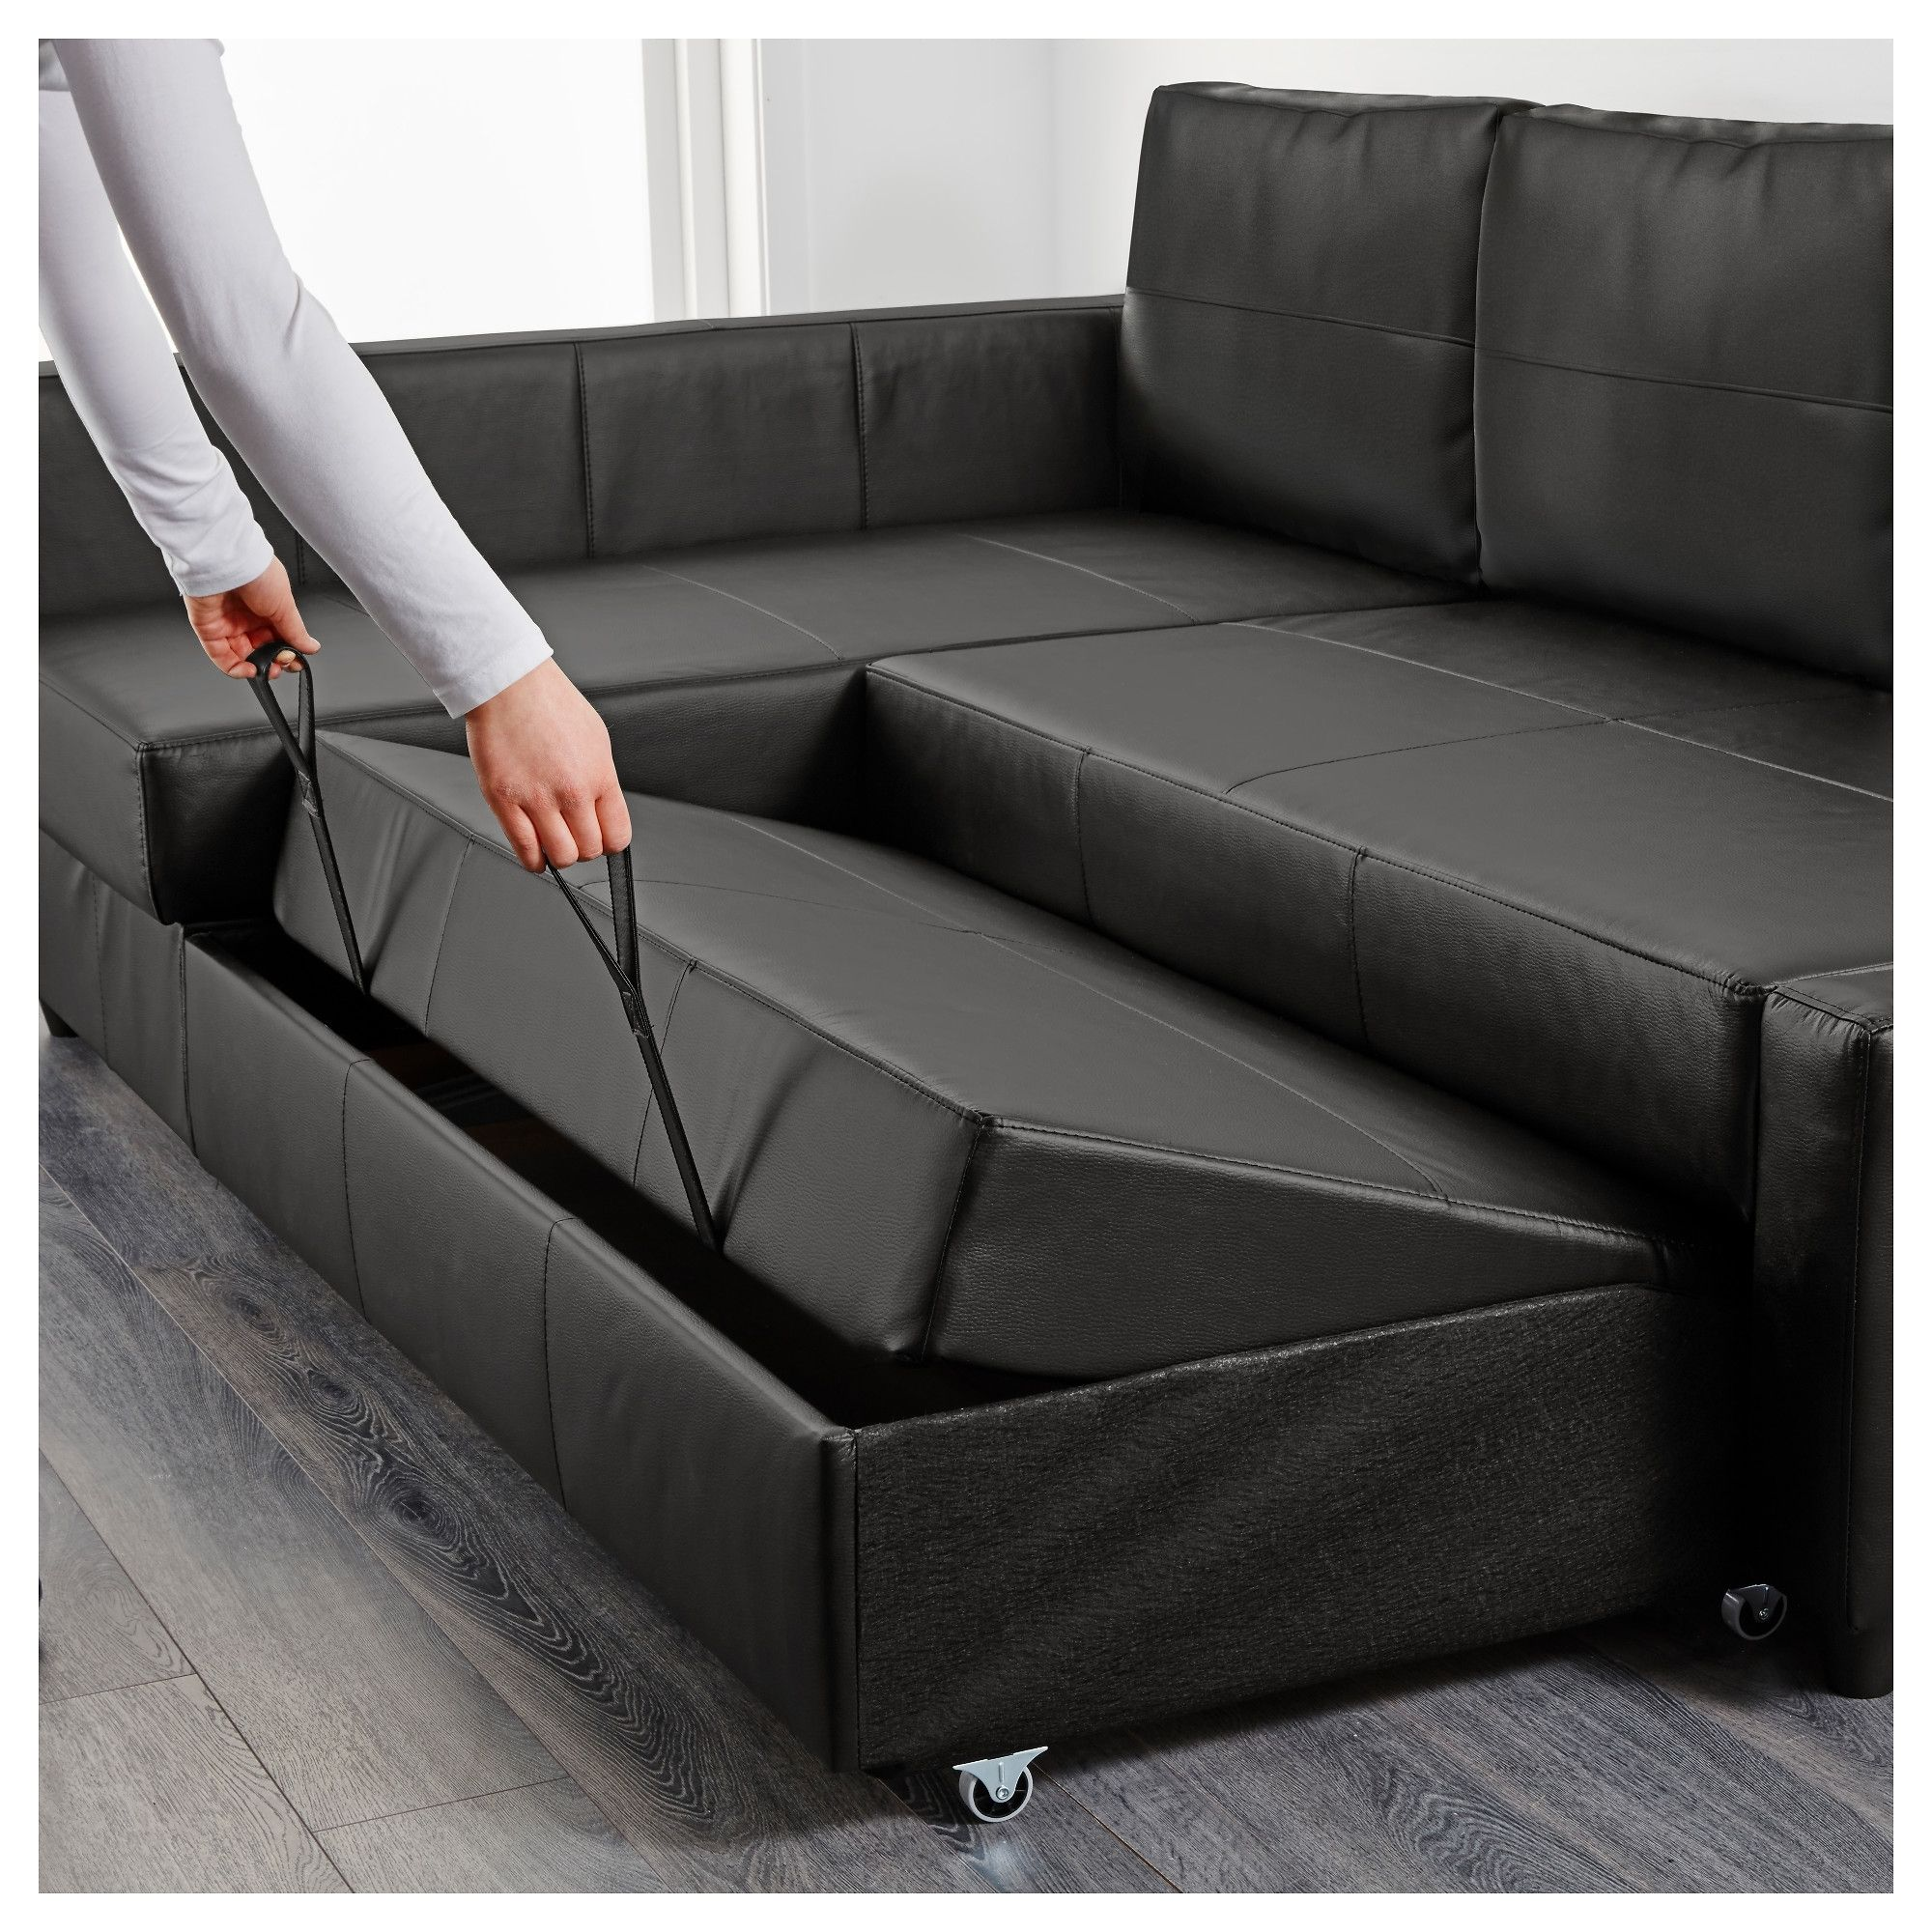 Leather Sofas With Storage Https Tany P